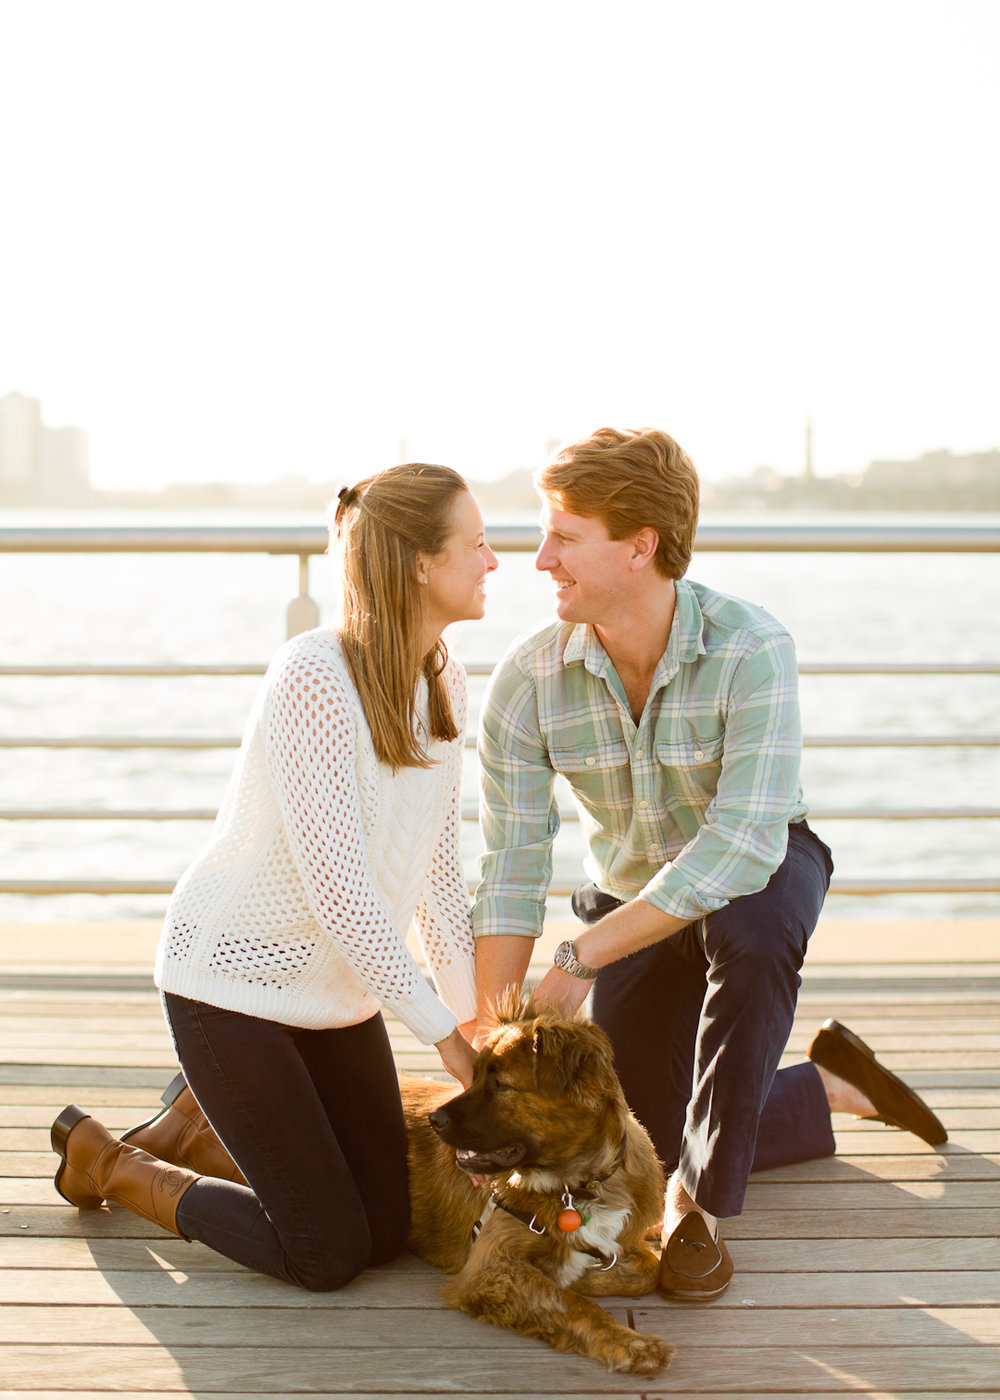 Melissa Kruse Photography - Megan & Tyler West Village Engagement Photos-100.jpg